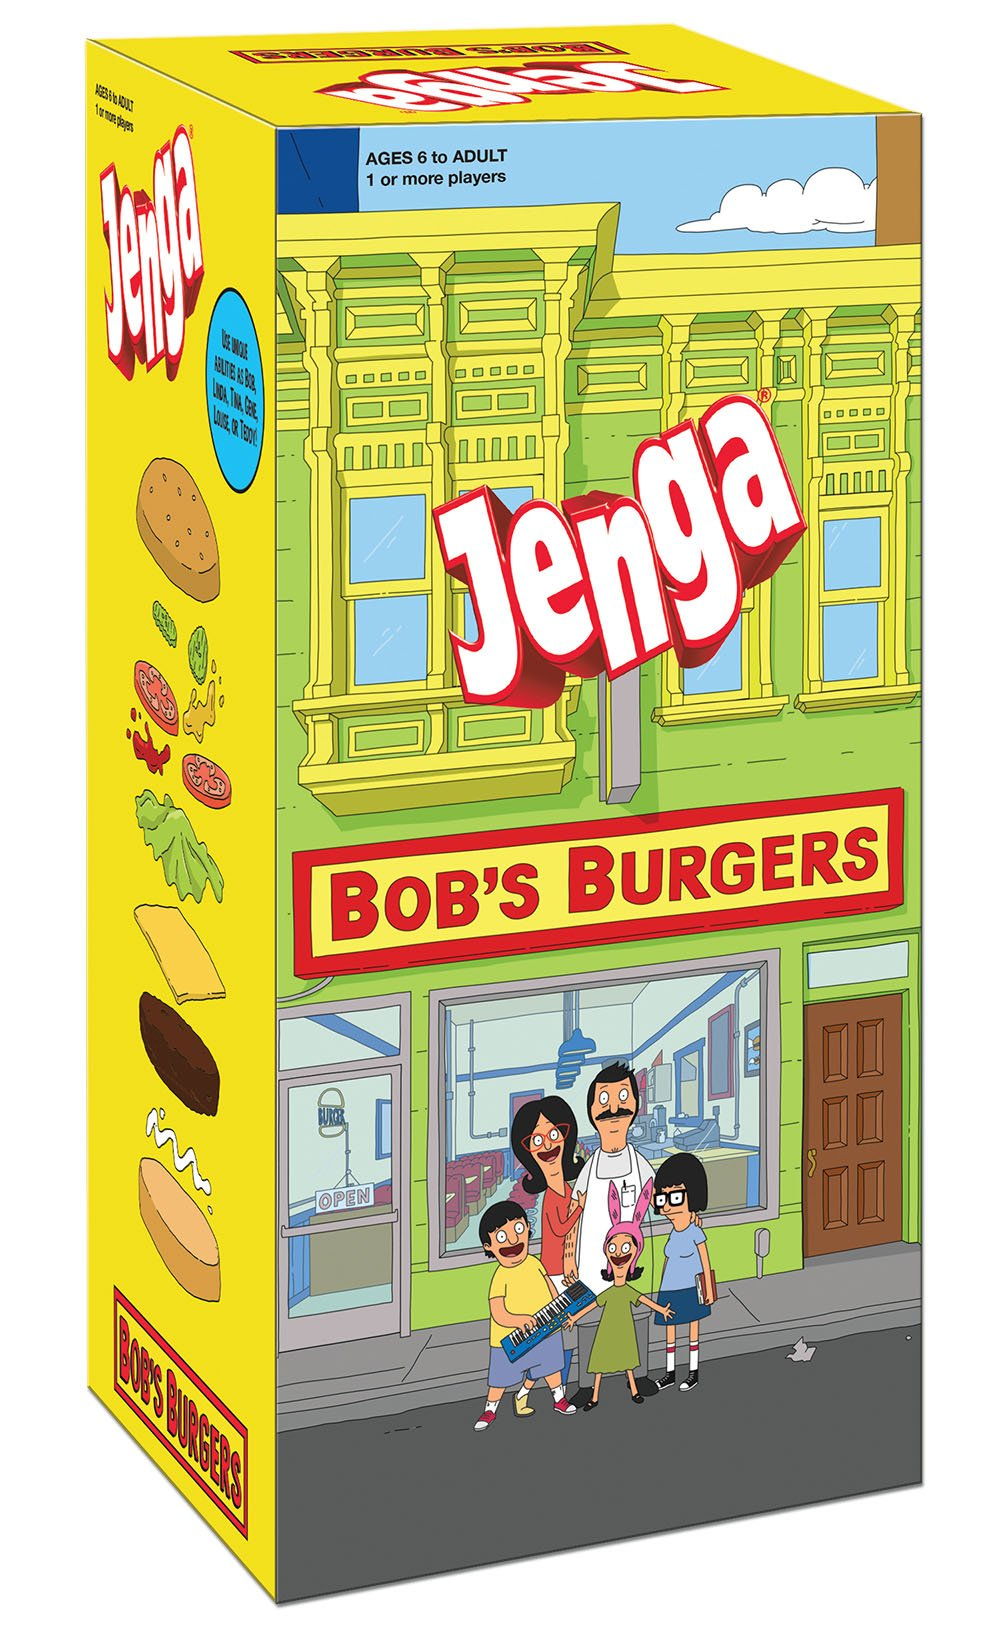 USAOPOLY Bob's Burgers Edition Jenga Game|Move Your Characters Up The Blocks to Score Points|Play As 1 of 6 of Your Favorite Characters|Custom Blocks are Traditional Burger Ingredients by USAOPOLY